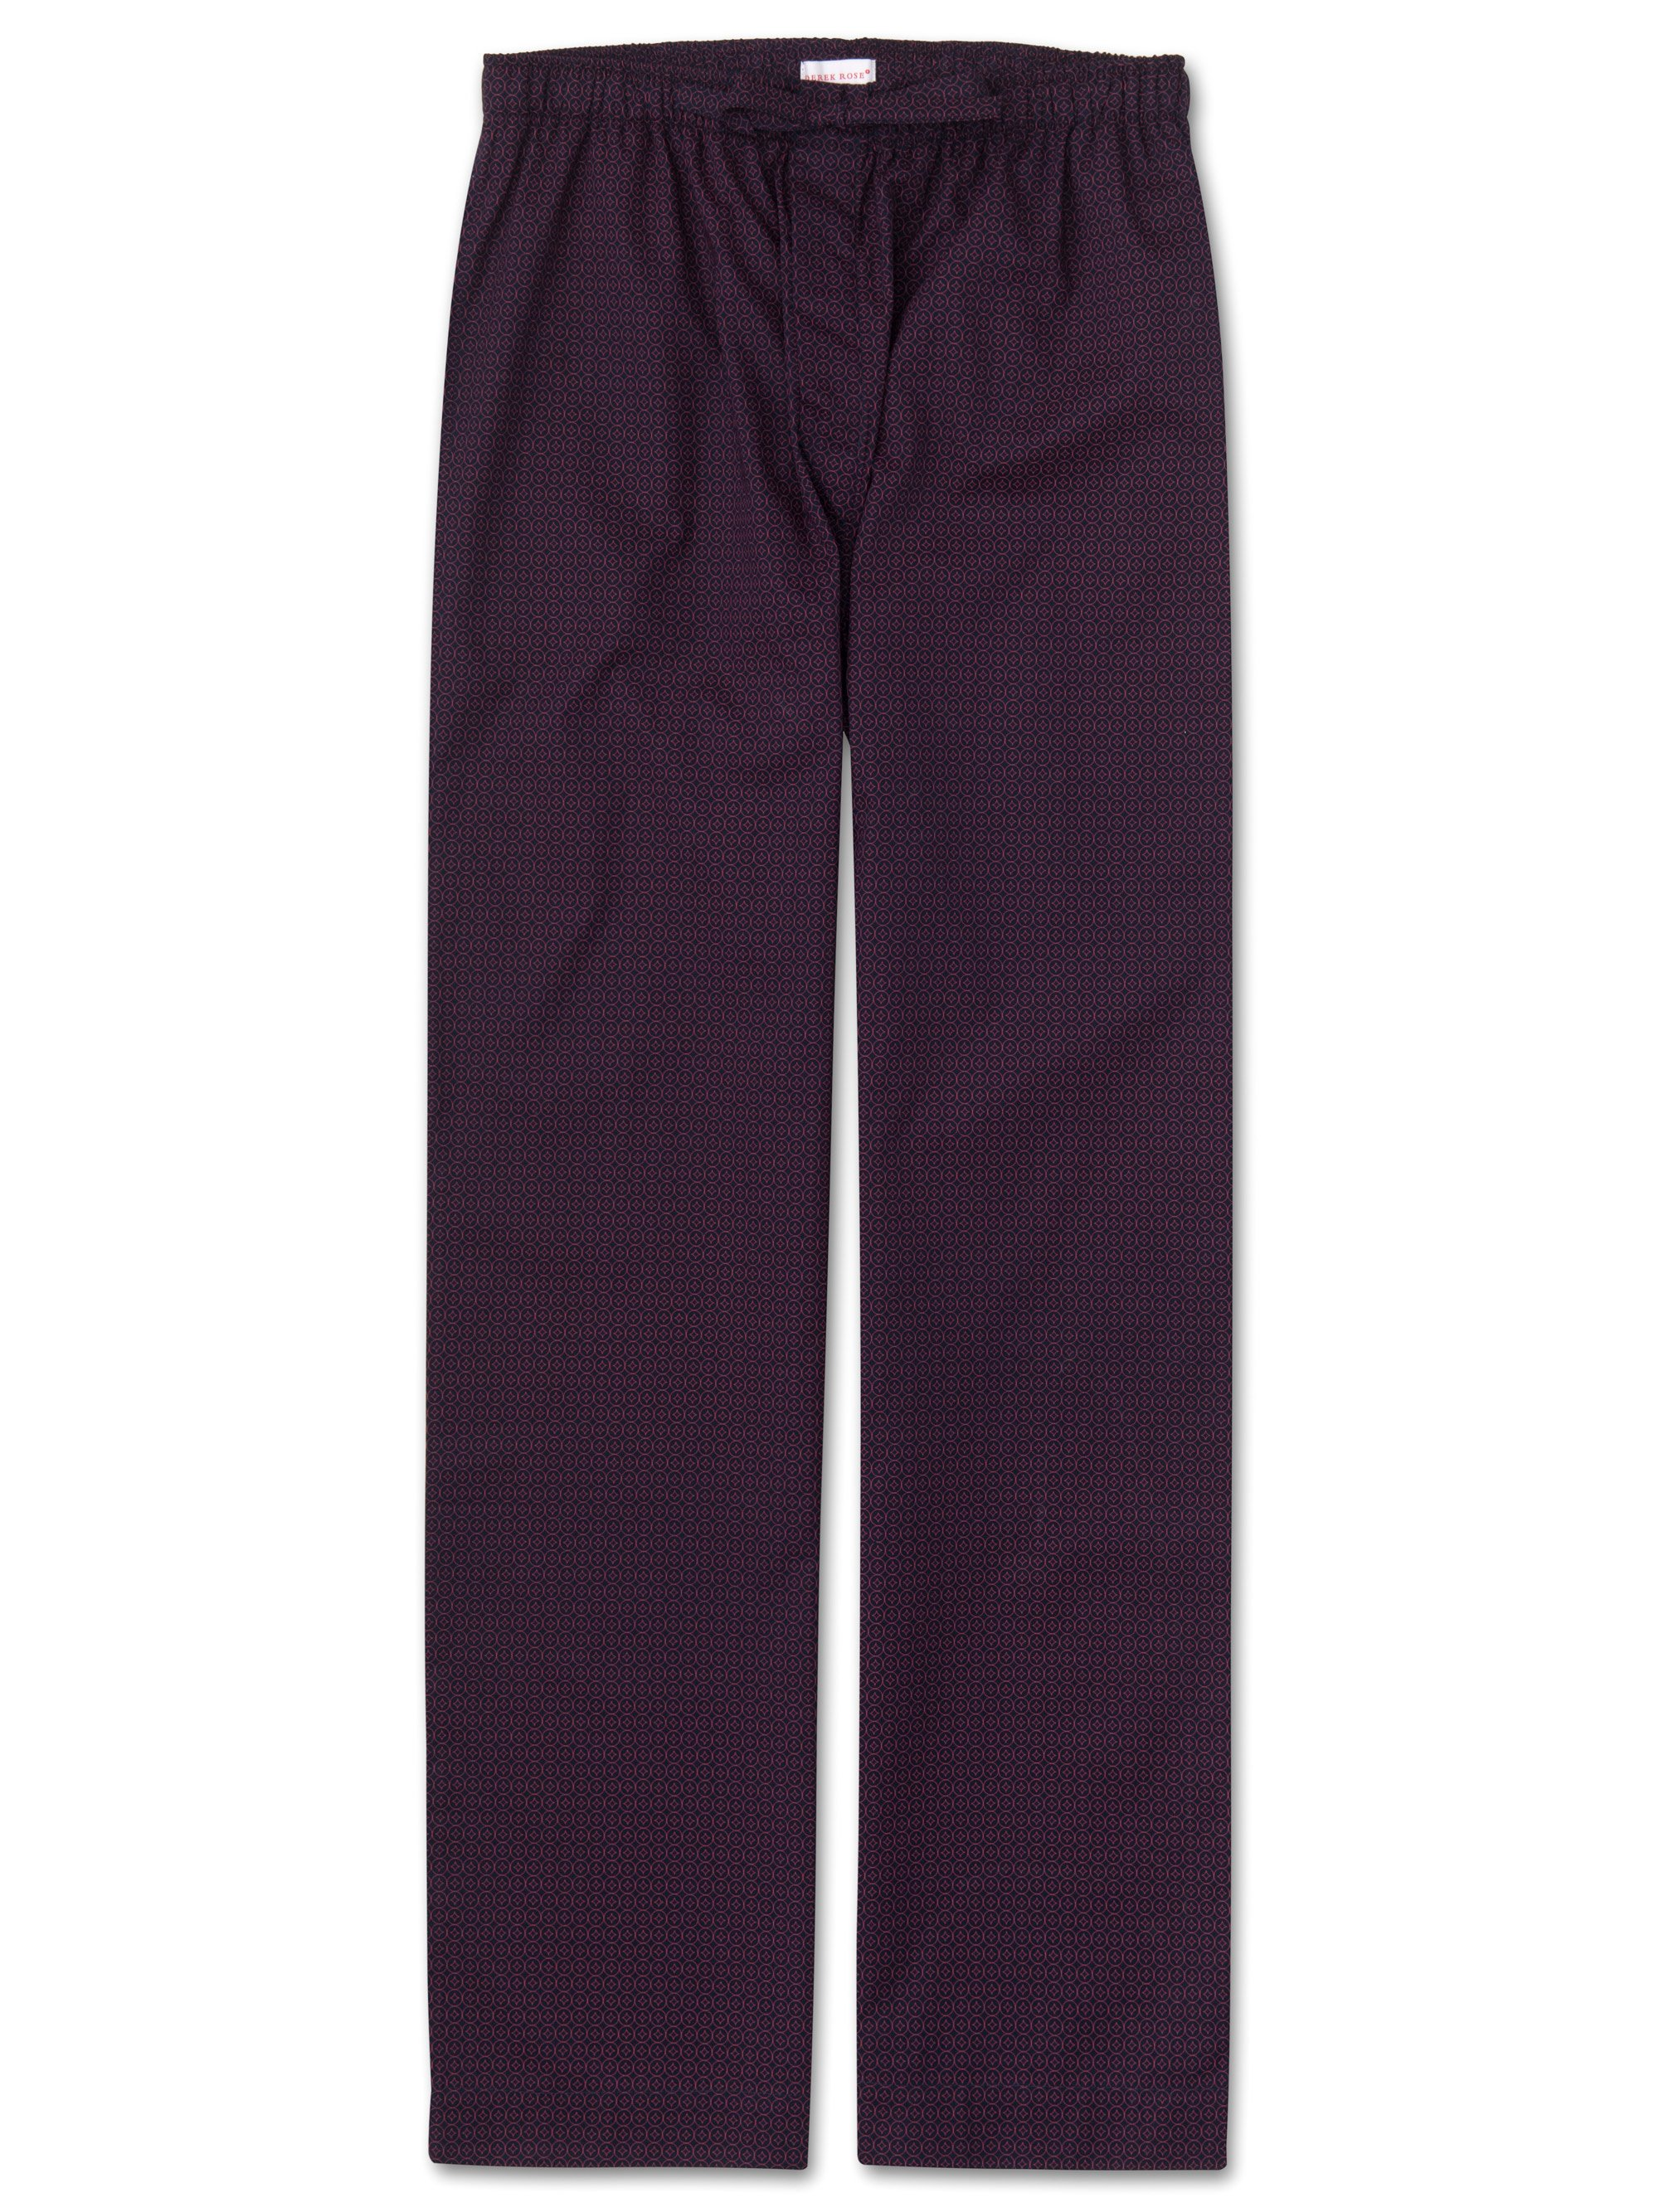 Men's Lounge Trousers Nelson 60 Cotton Batiste Navy